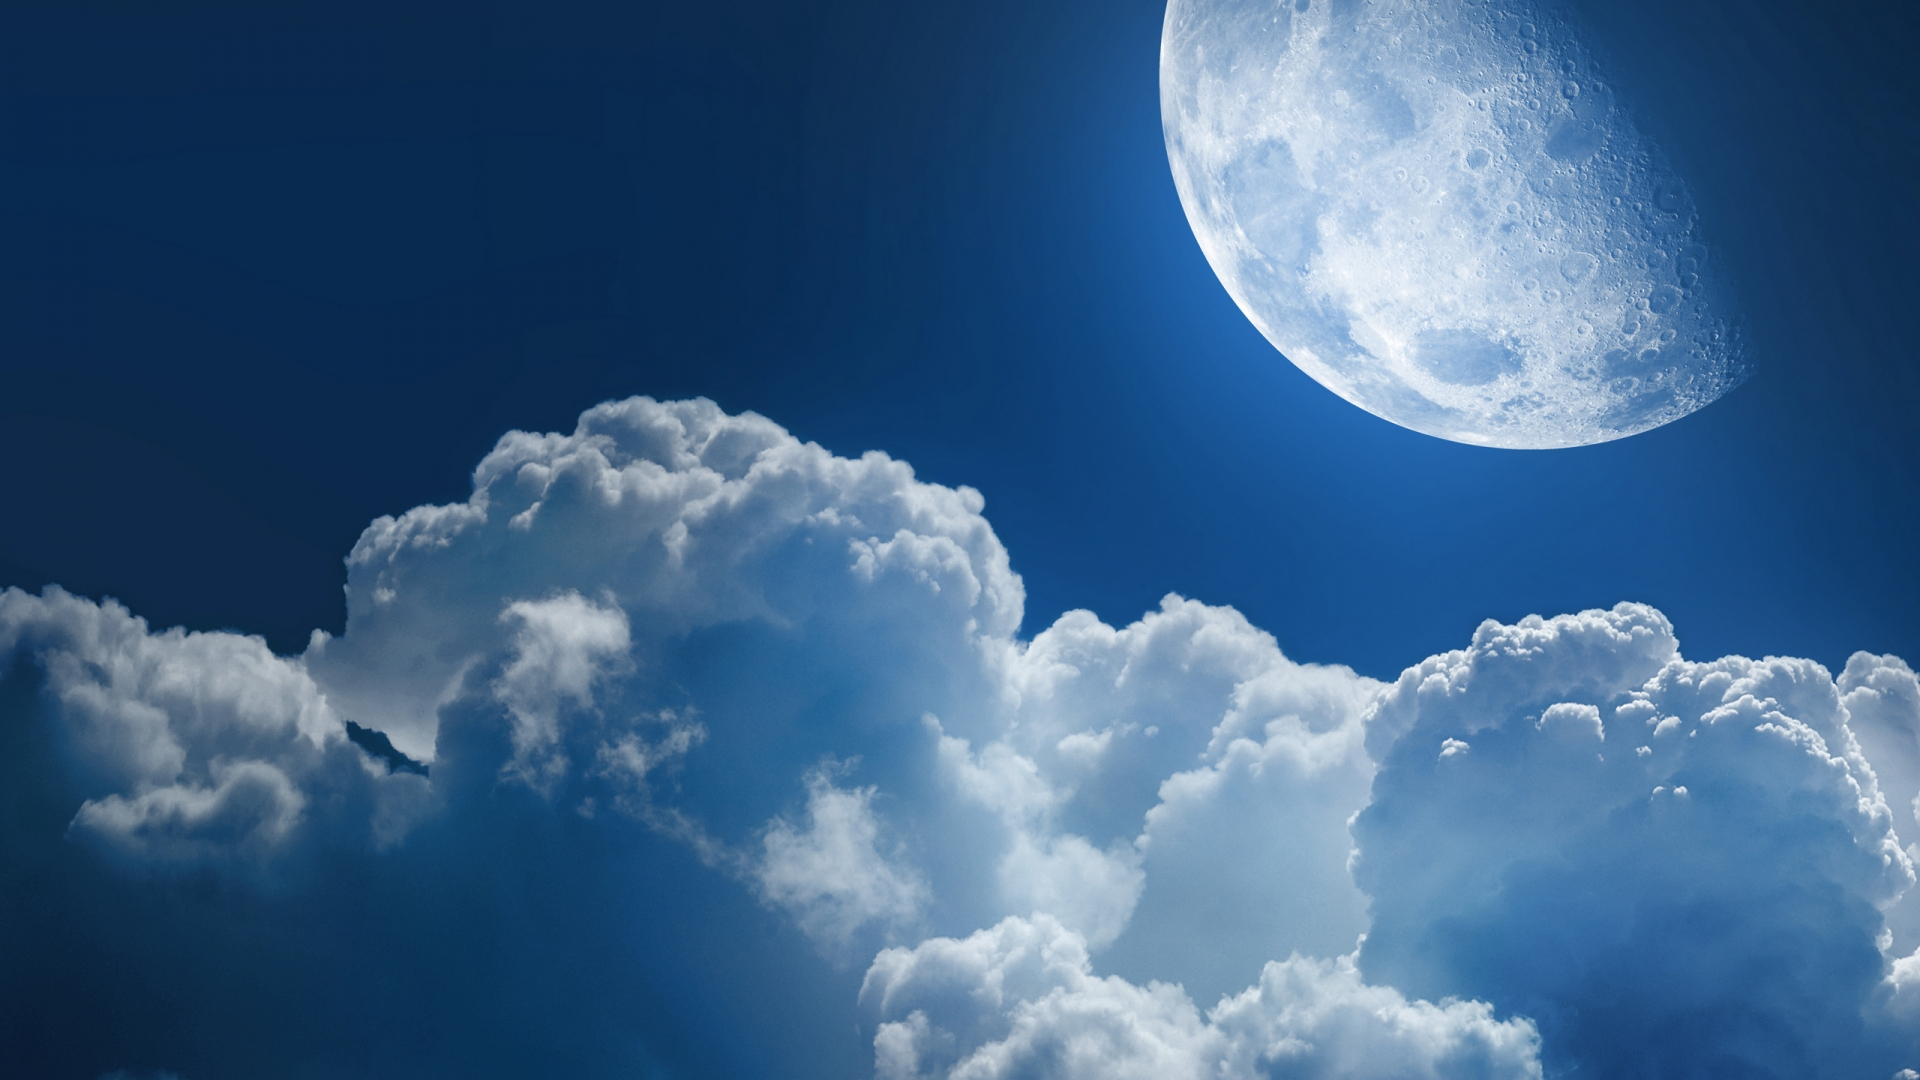 Night Cloud Wallpaper Hd Pixelstalk Net